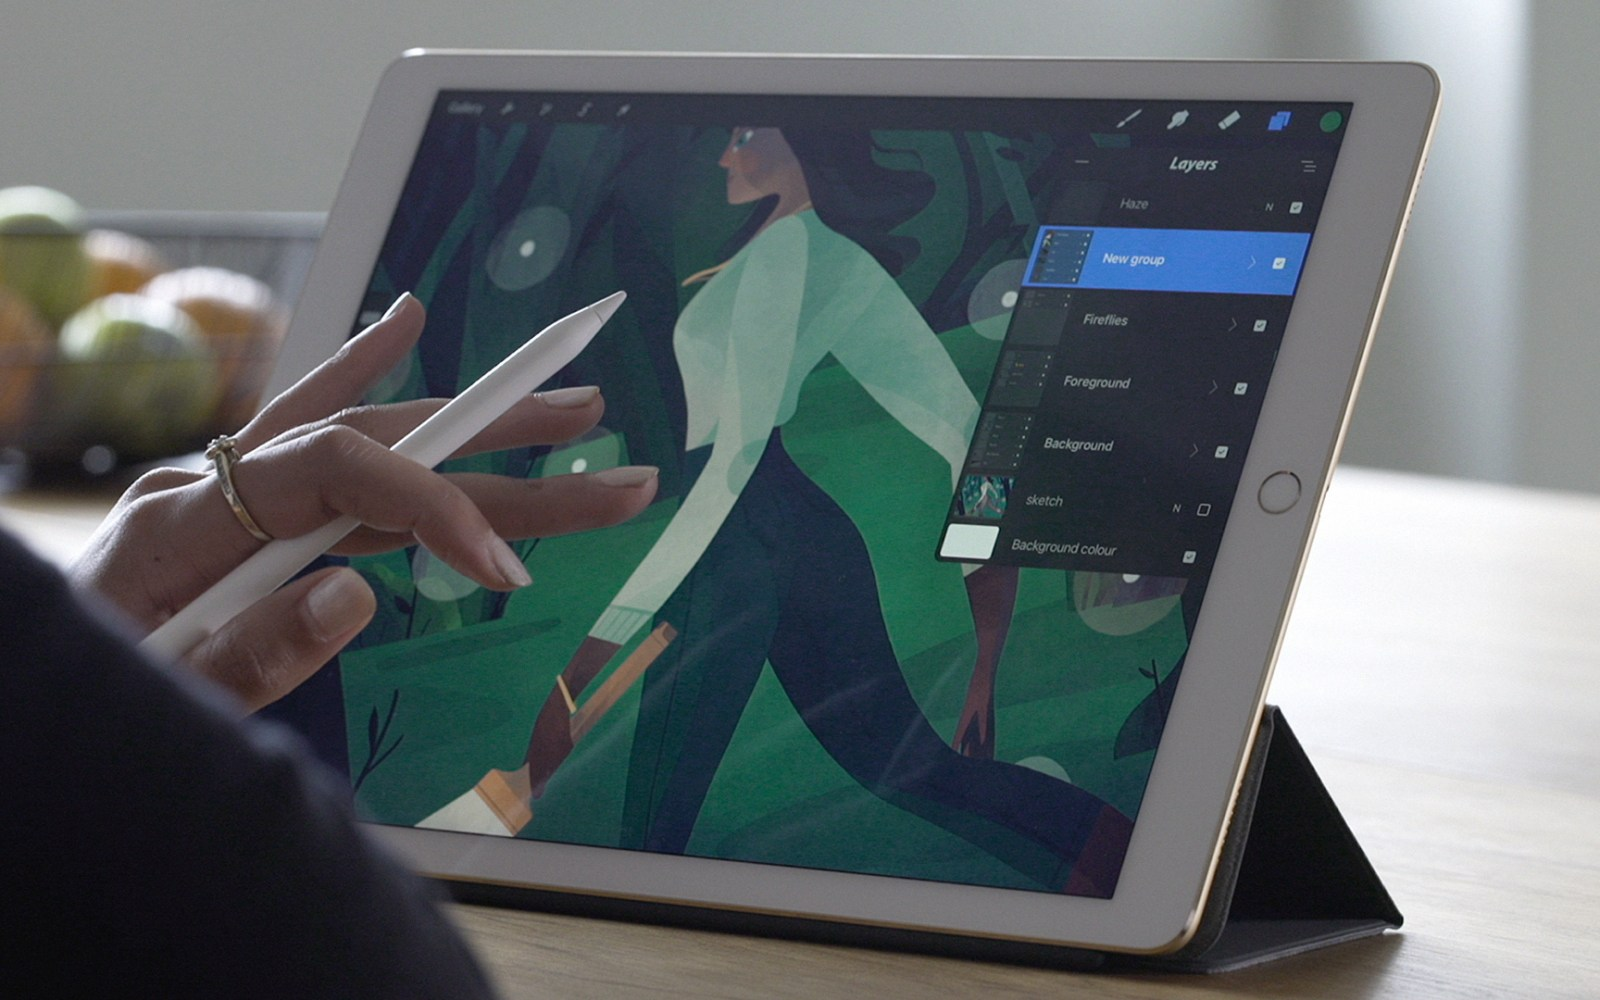 Procreate for iPad adds Photoshop PSD import, screen capture/live streaming, keyboard shortcuts and more